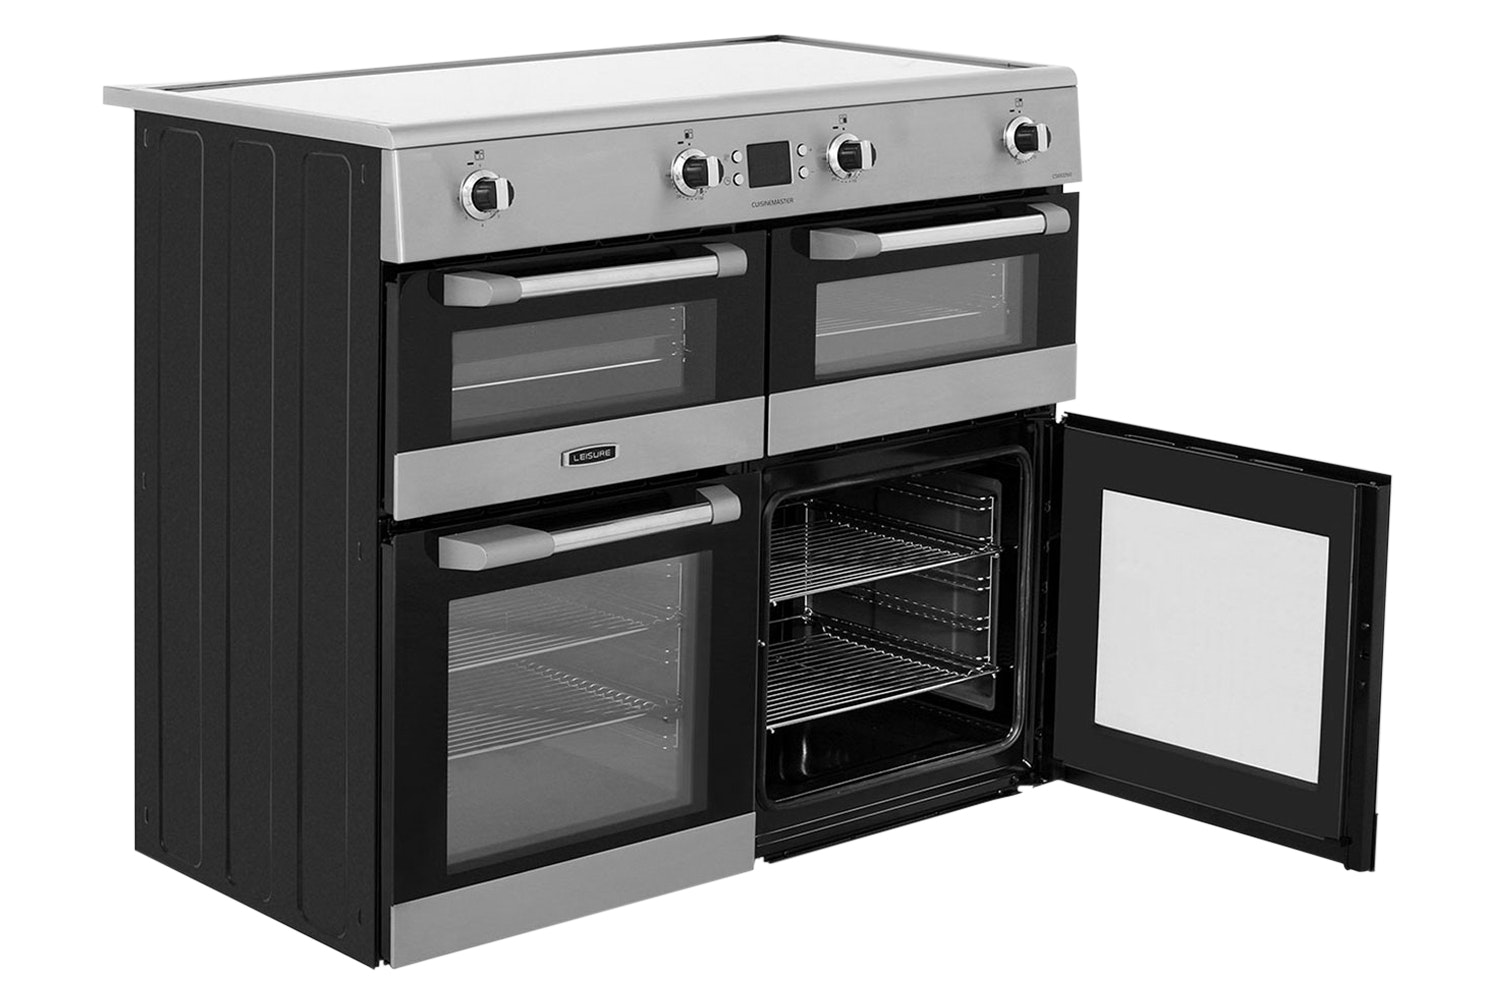 Leisure Cuisinemaster 100cm Electric Range Cooker | CS100D510X | Stainless Steel